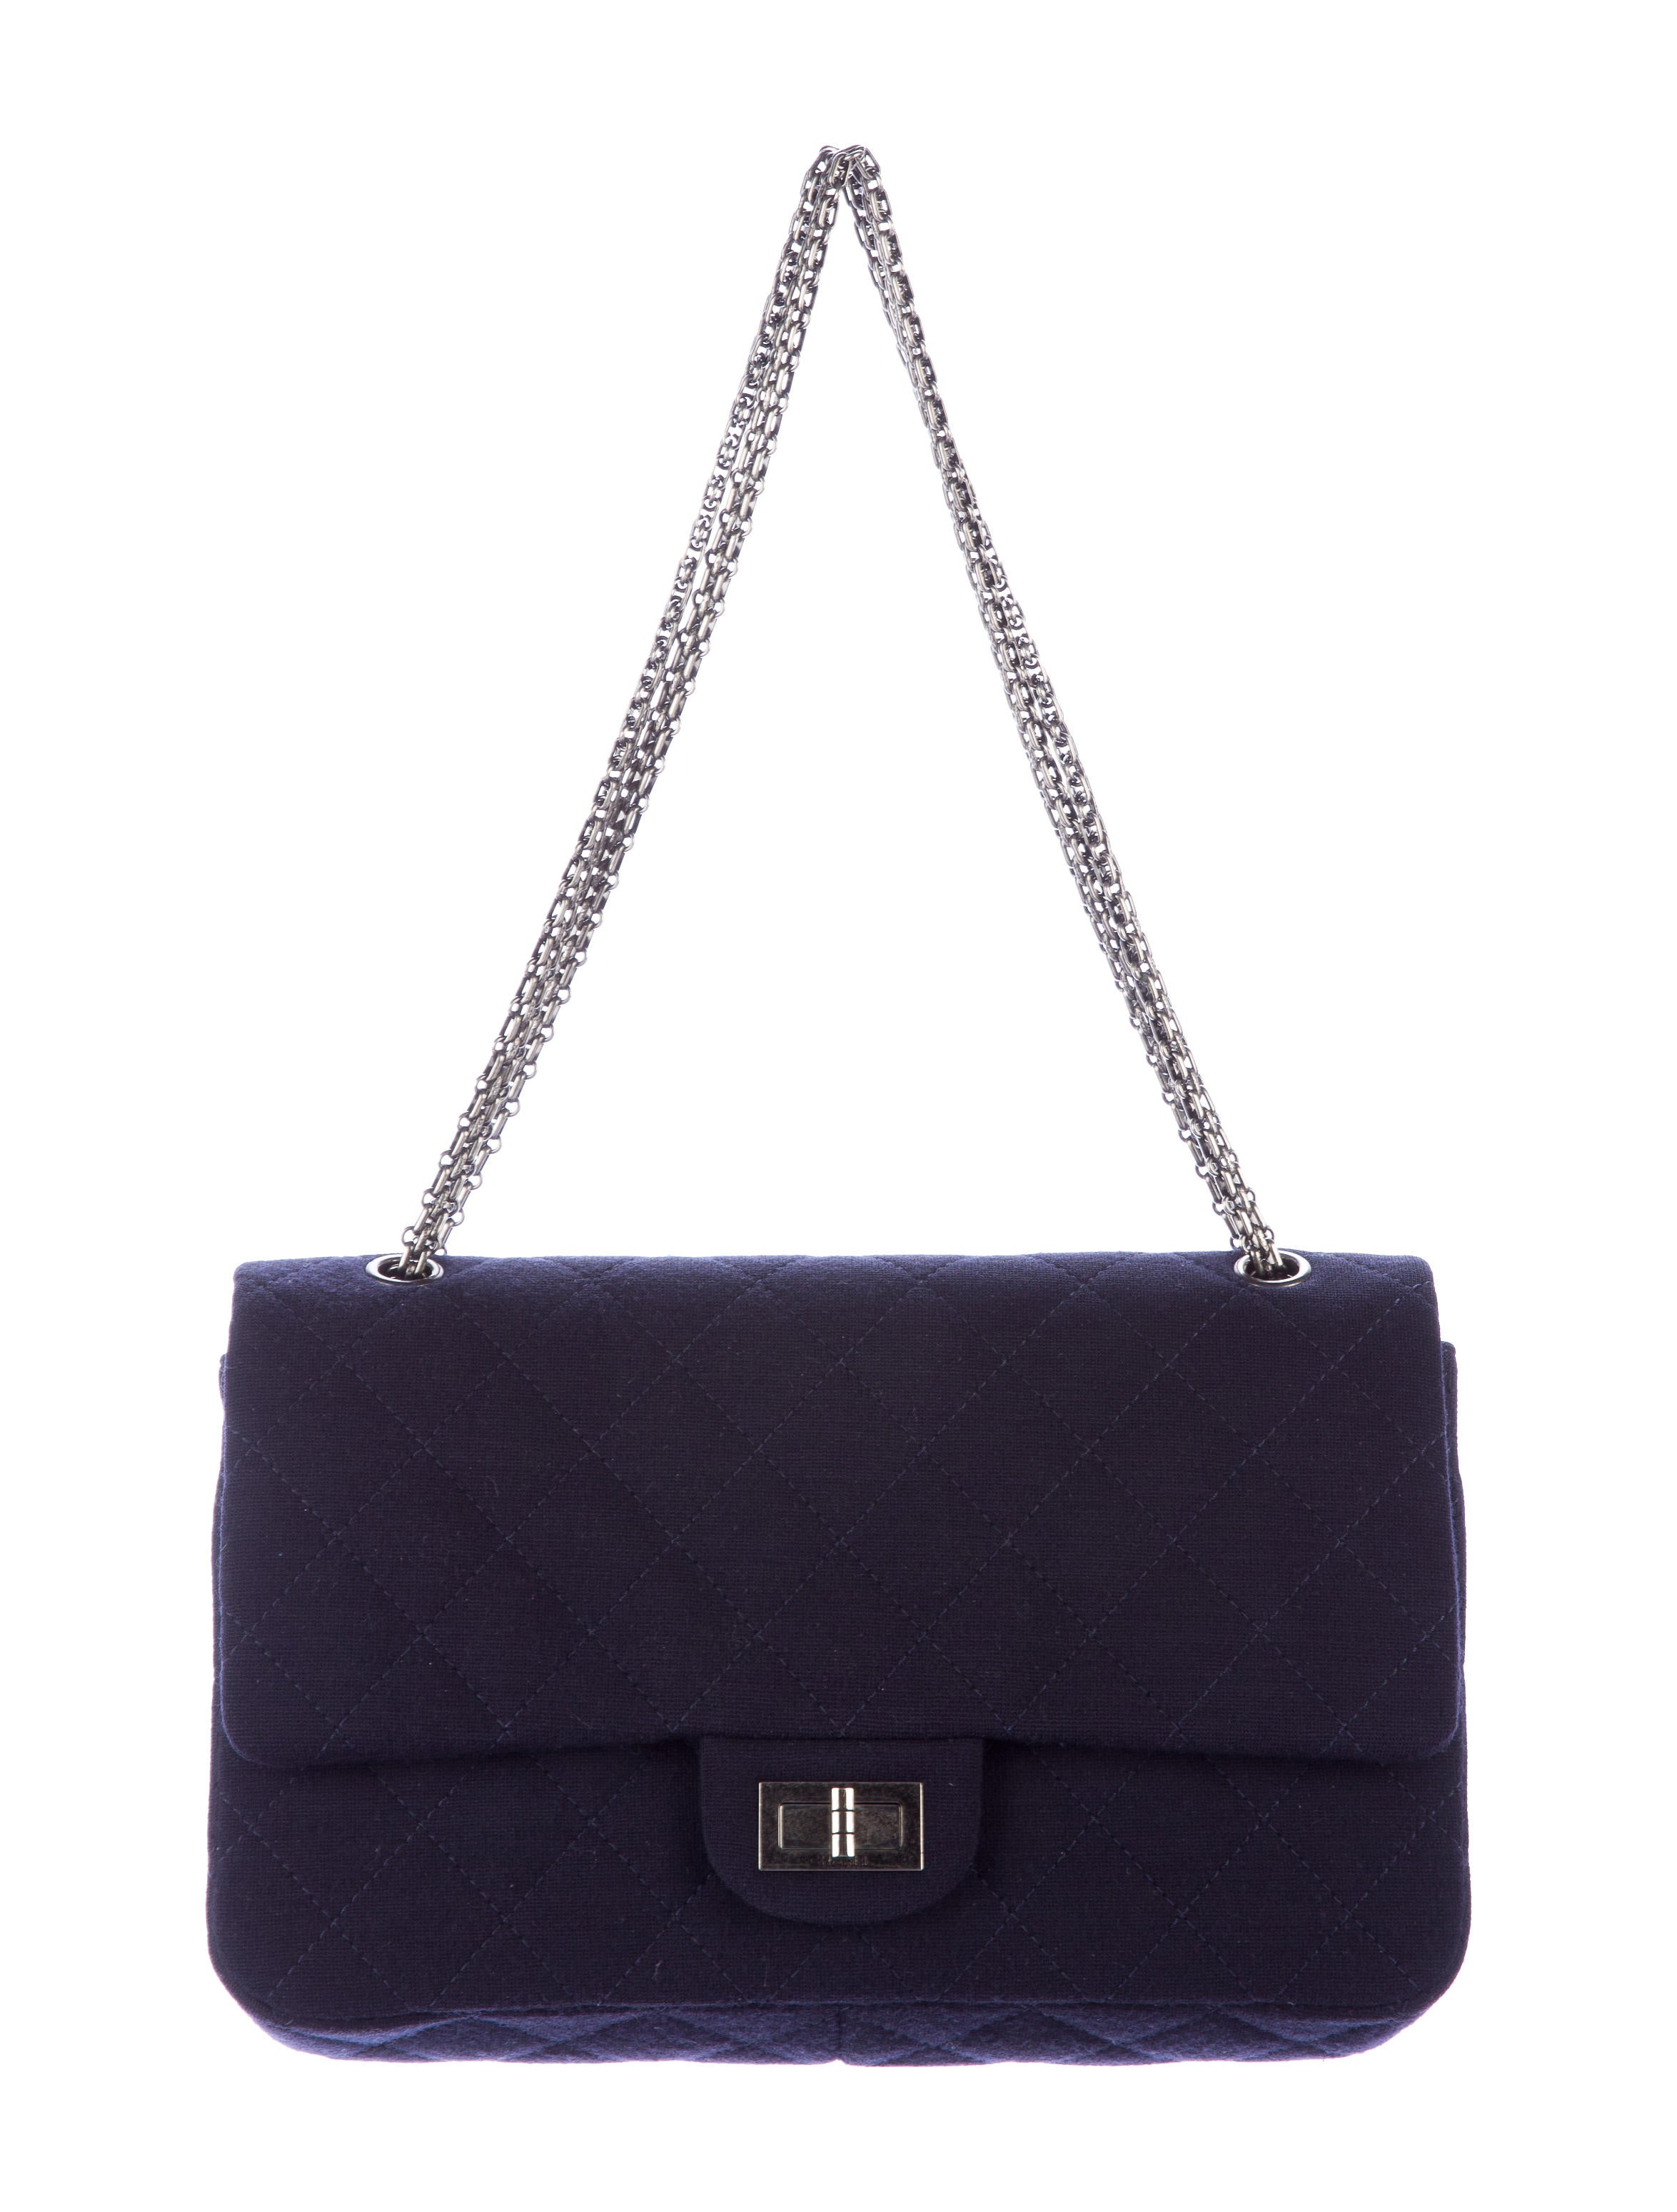 a1af617f8a0afe Chanel Jersey Reissue 227 Double Flap Bag - Handbags - CHA148921 ...